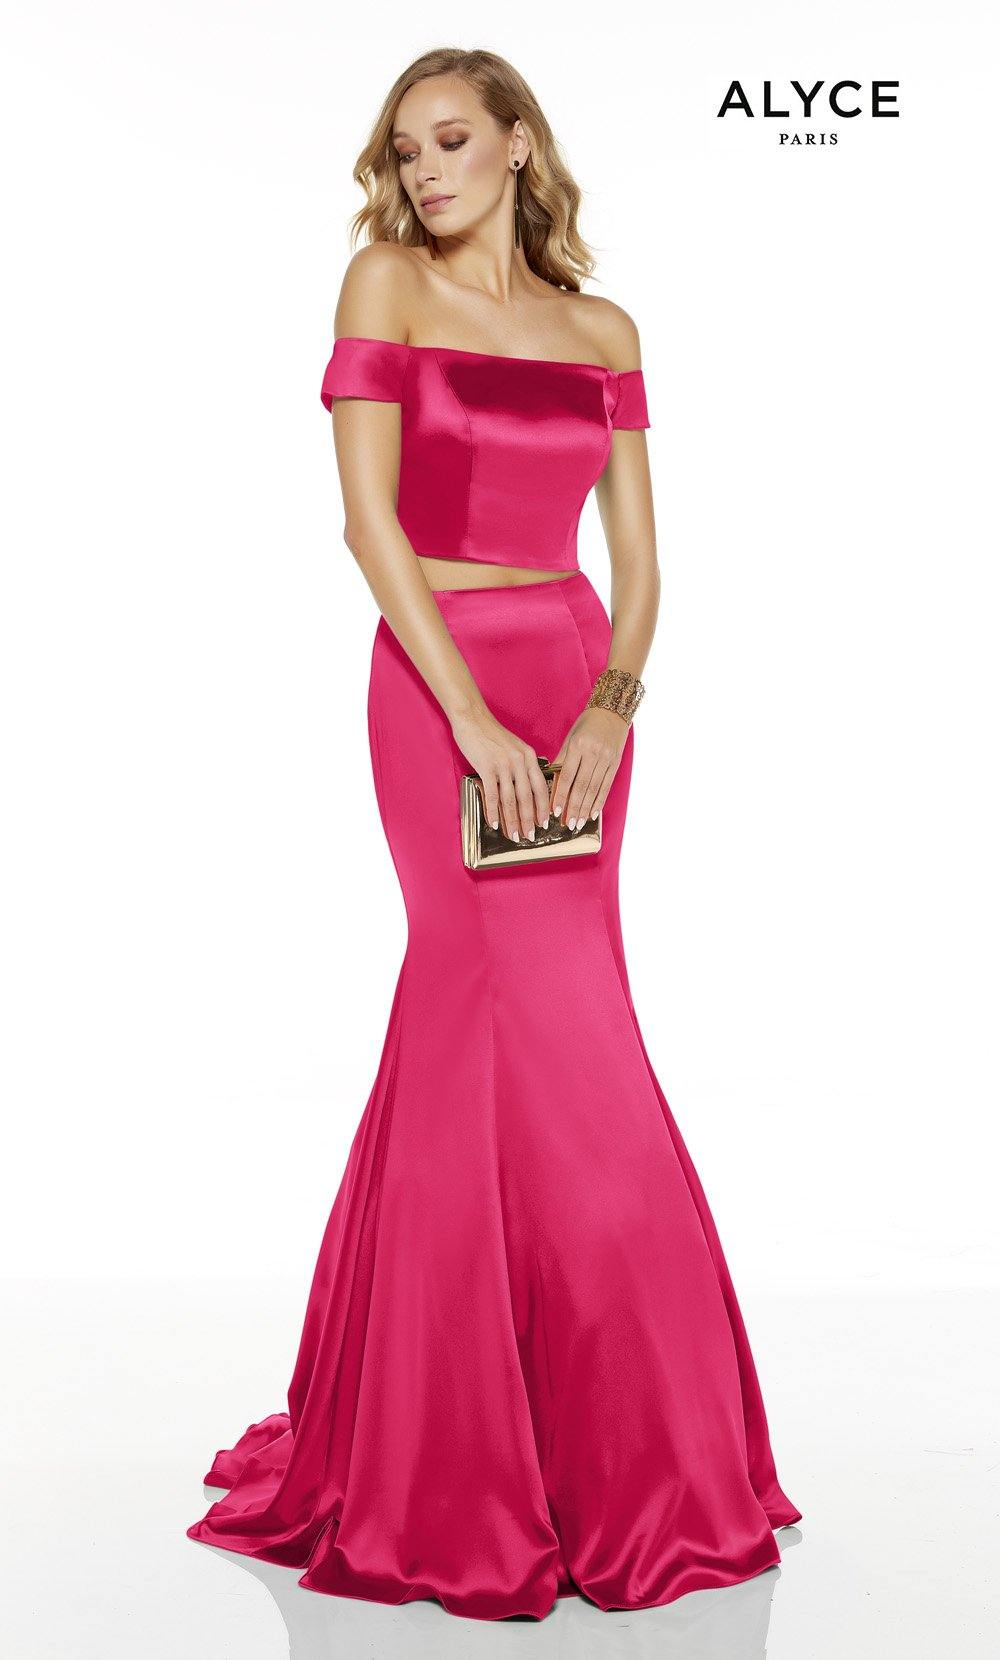 Barbie Pink off the shoulder two piece mermaid prom dress